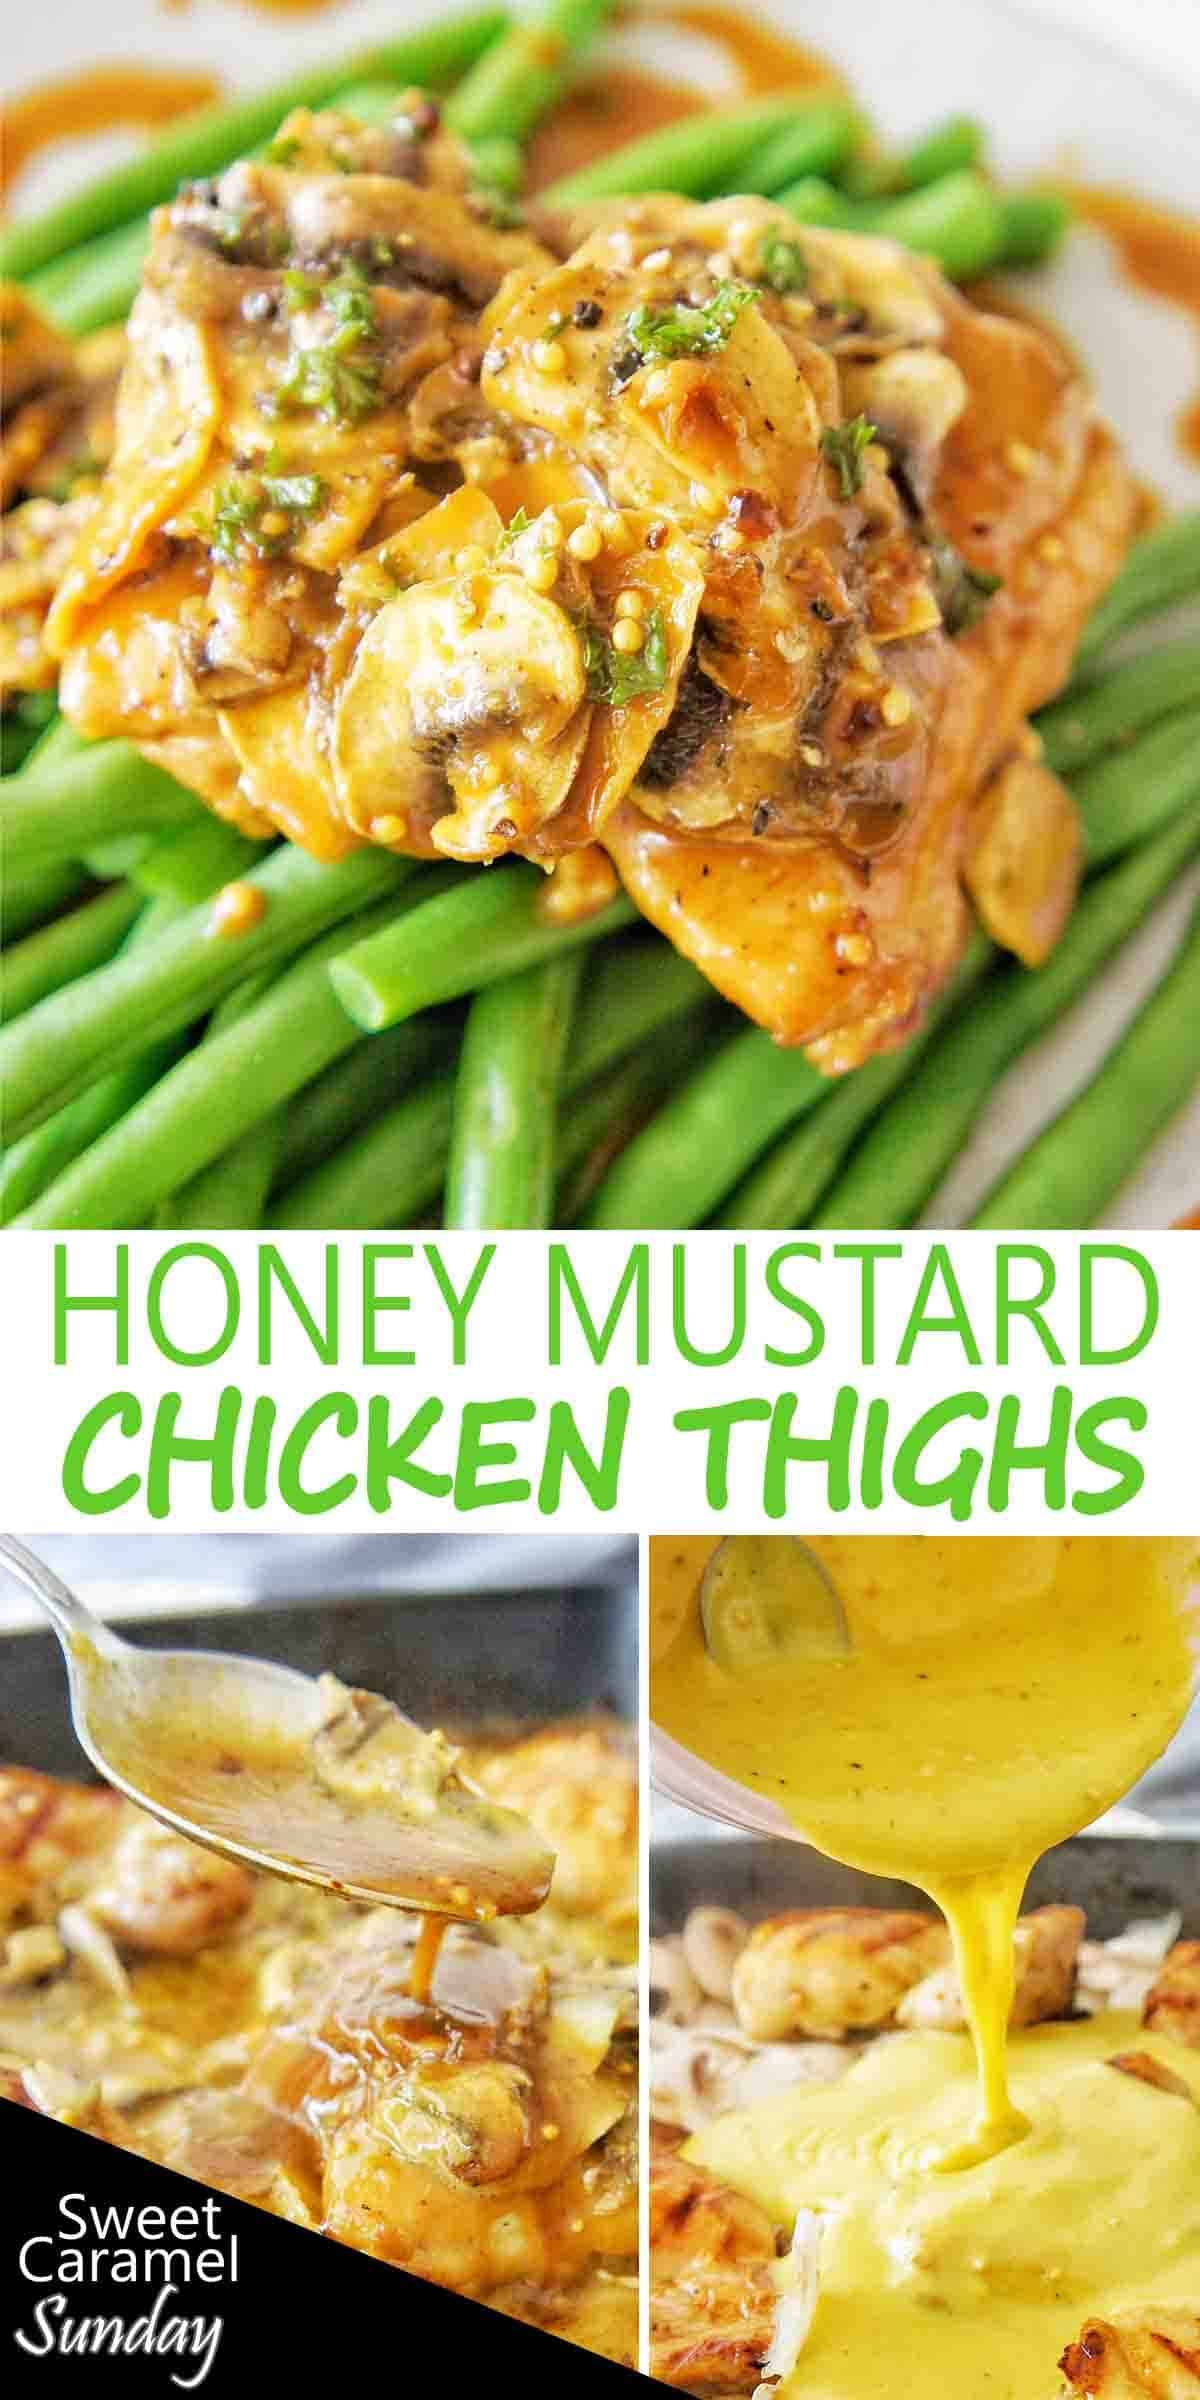 Honey Mustard Chicken Thighs with text over lay